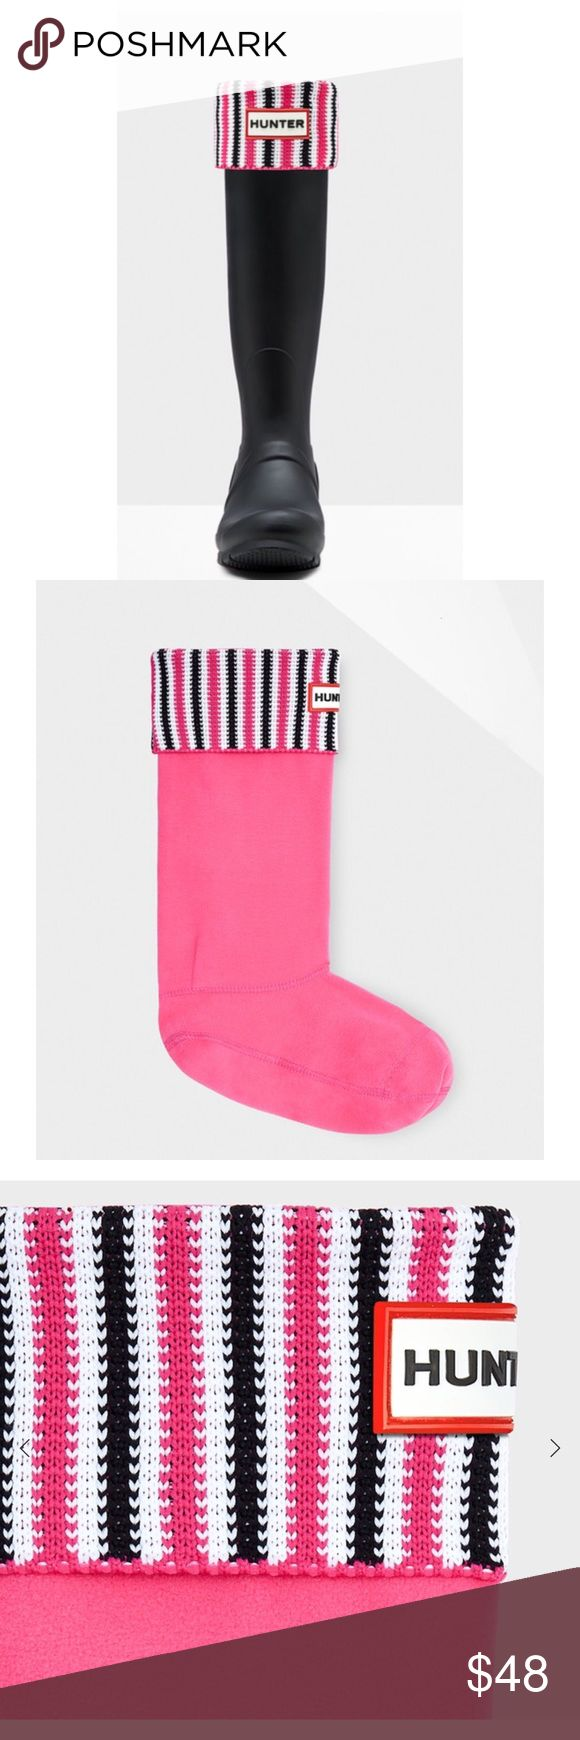 HUNTER TALL ROLLOVER DECK CHAIR SOCKS WKD SALE LOVE THESE! IN BOX. CAB BLEND WITH MULTIPLE HUNTER BOOTS FOR THAT ADDED POP!! SZ M. ✳️PRICE IS FIRM UNLESS BUNDLED. NO OFFERS Hunter Boots Accessories Hosiery & Socks